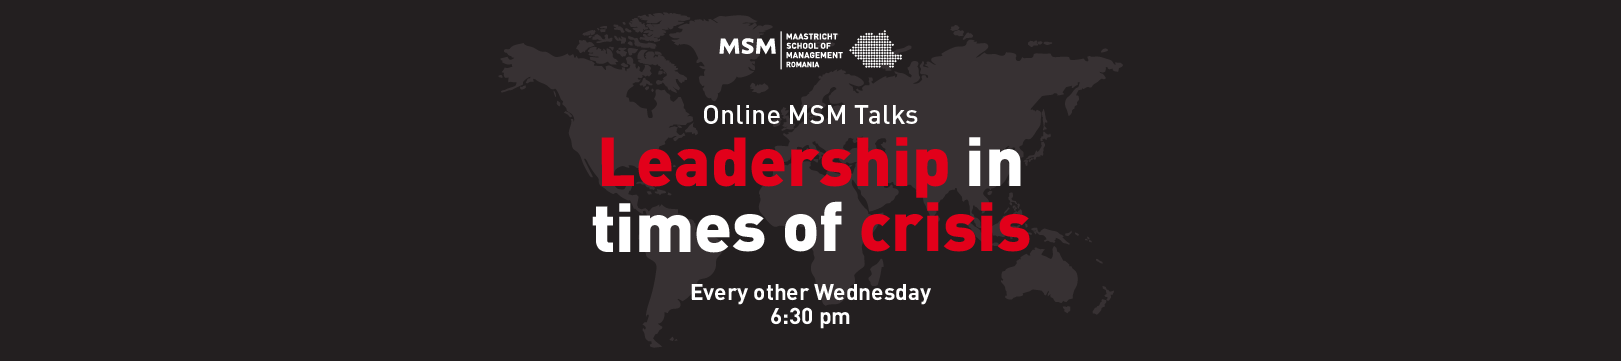 Leadership in times of crisis talks